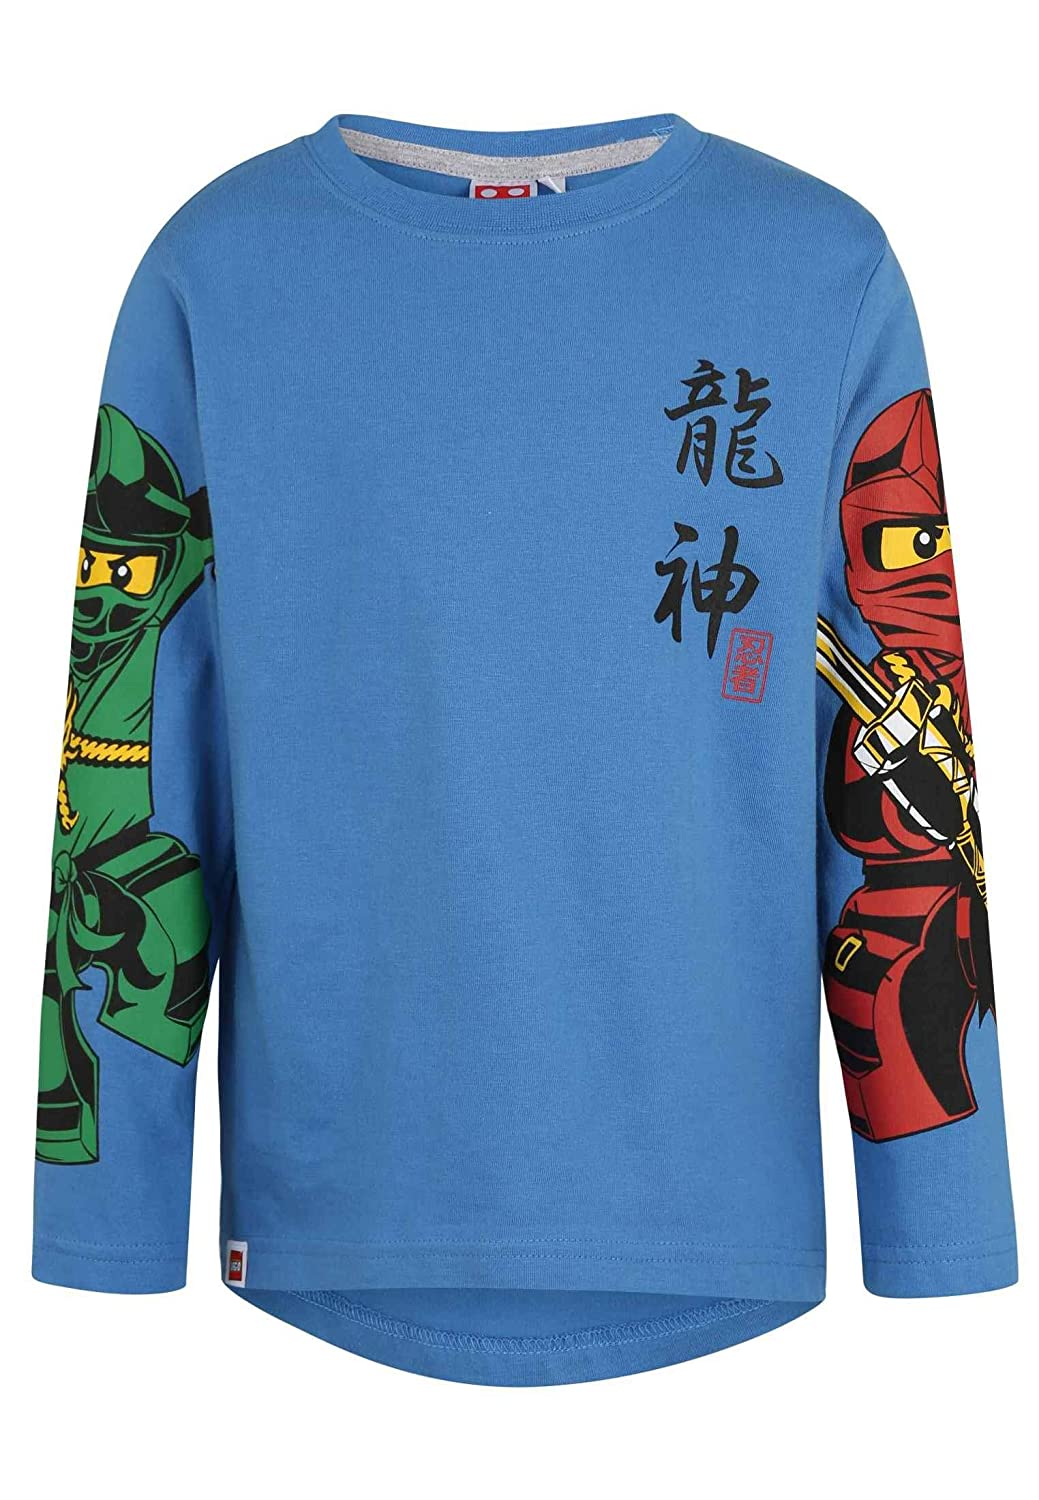 Lego Official Ninjago Licensed Boys Long Sleeve Top T-Shirt 100/% Cotton New 2018//19 Collection 3-10 Years